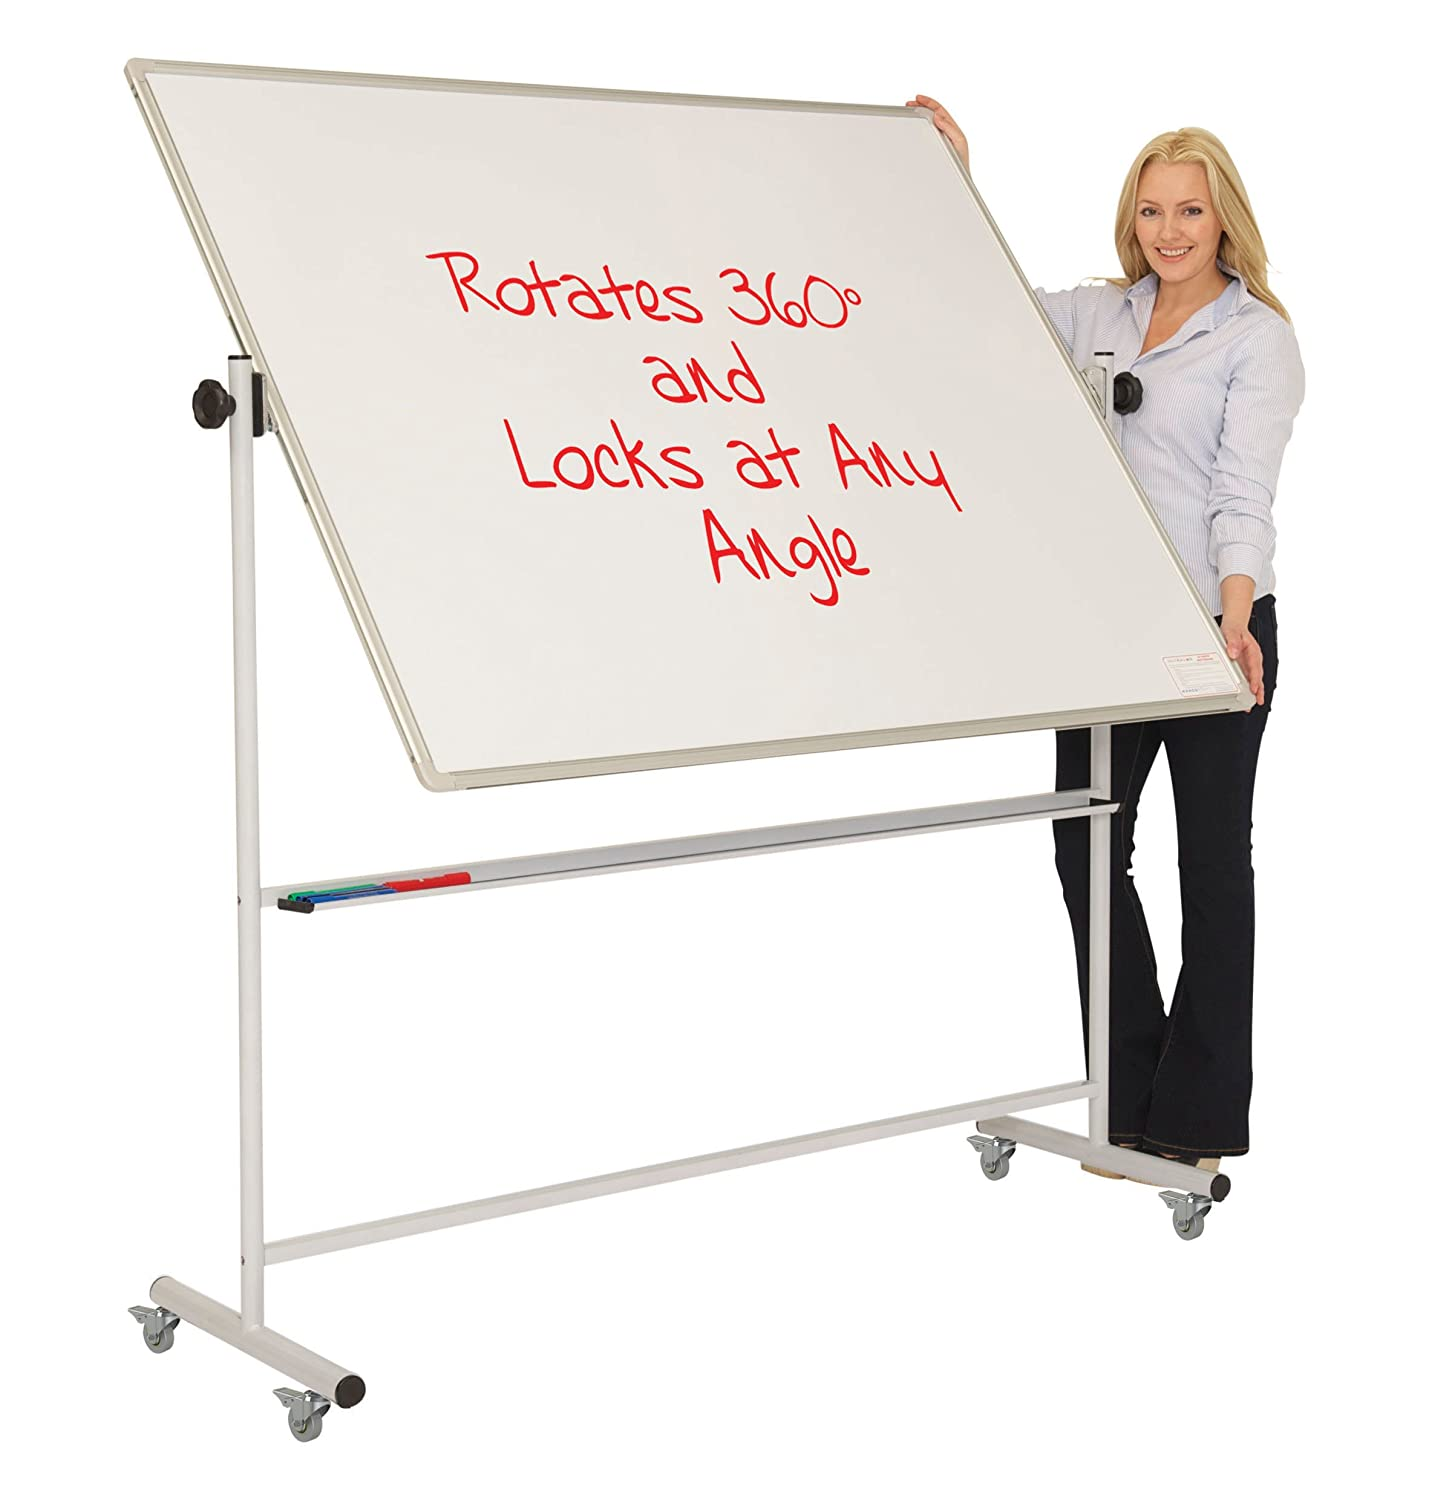 Spaceright Europe 120 x 90 cm Magnetic Mobile Swivel Writing Board